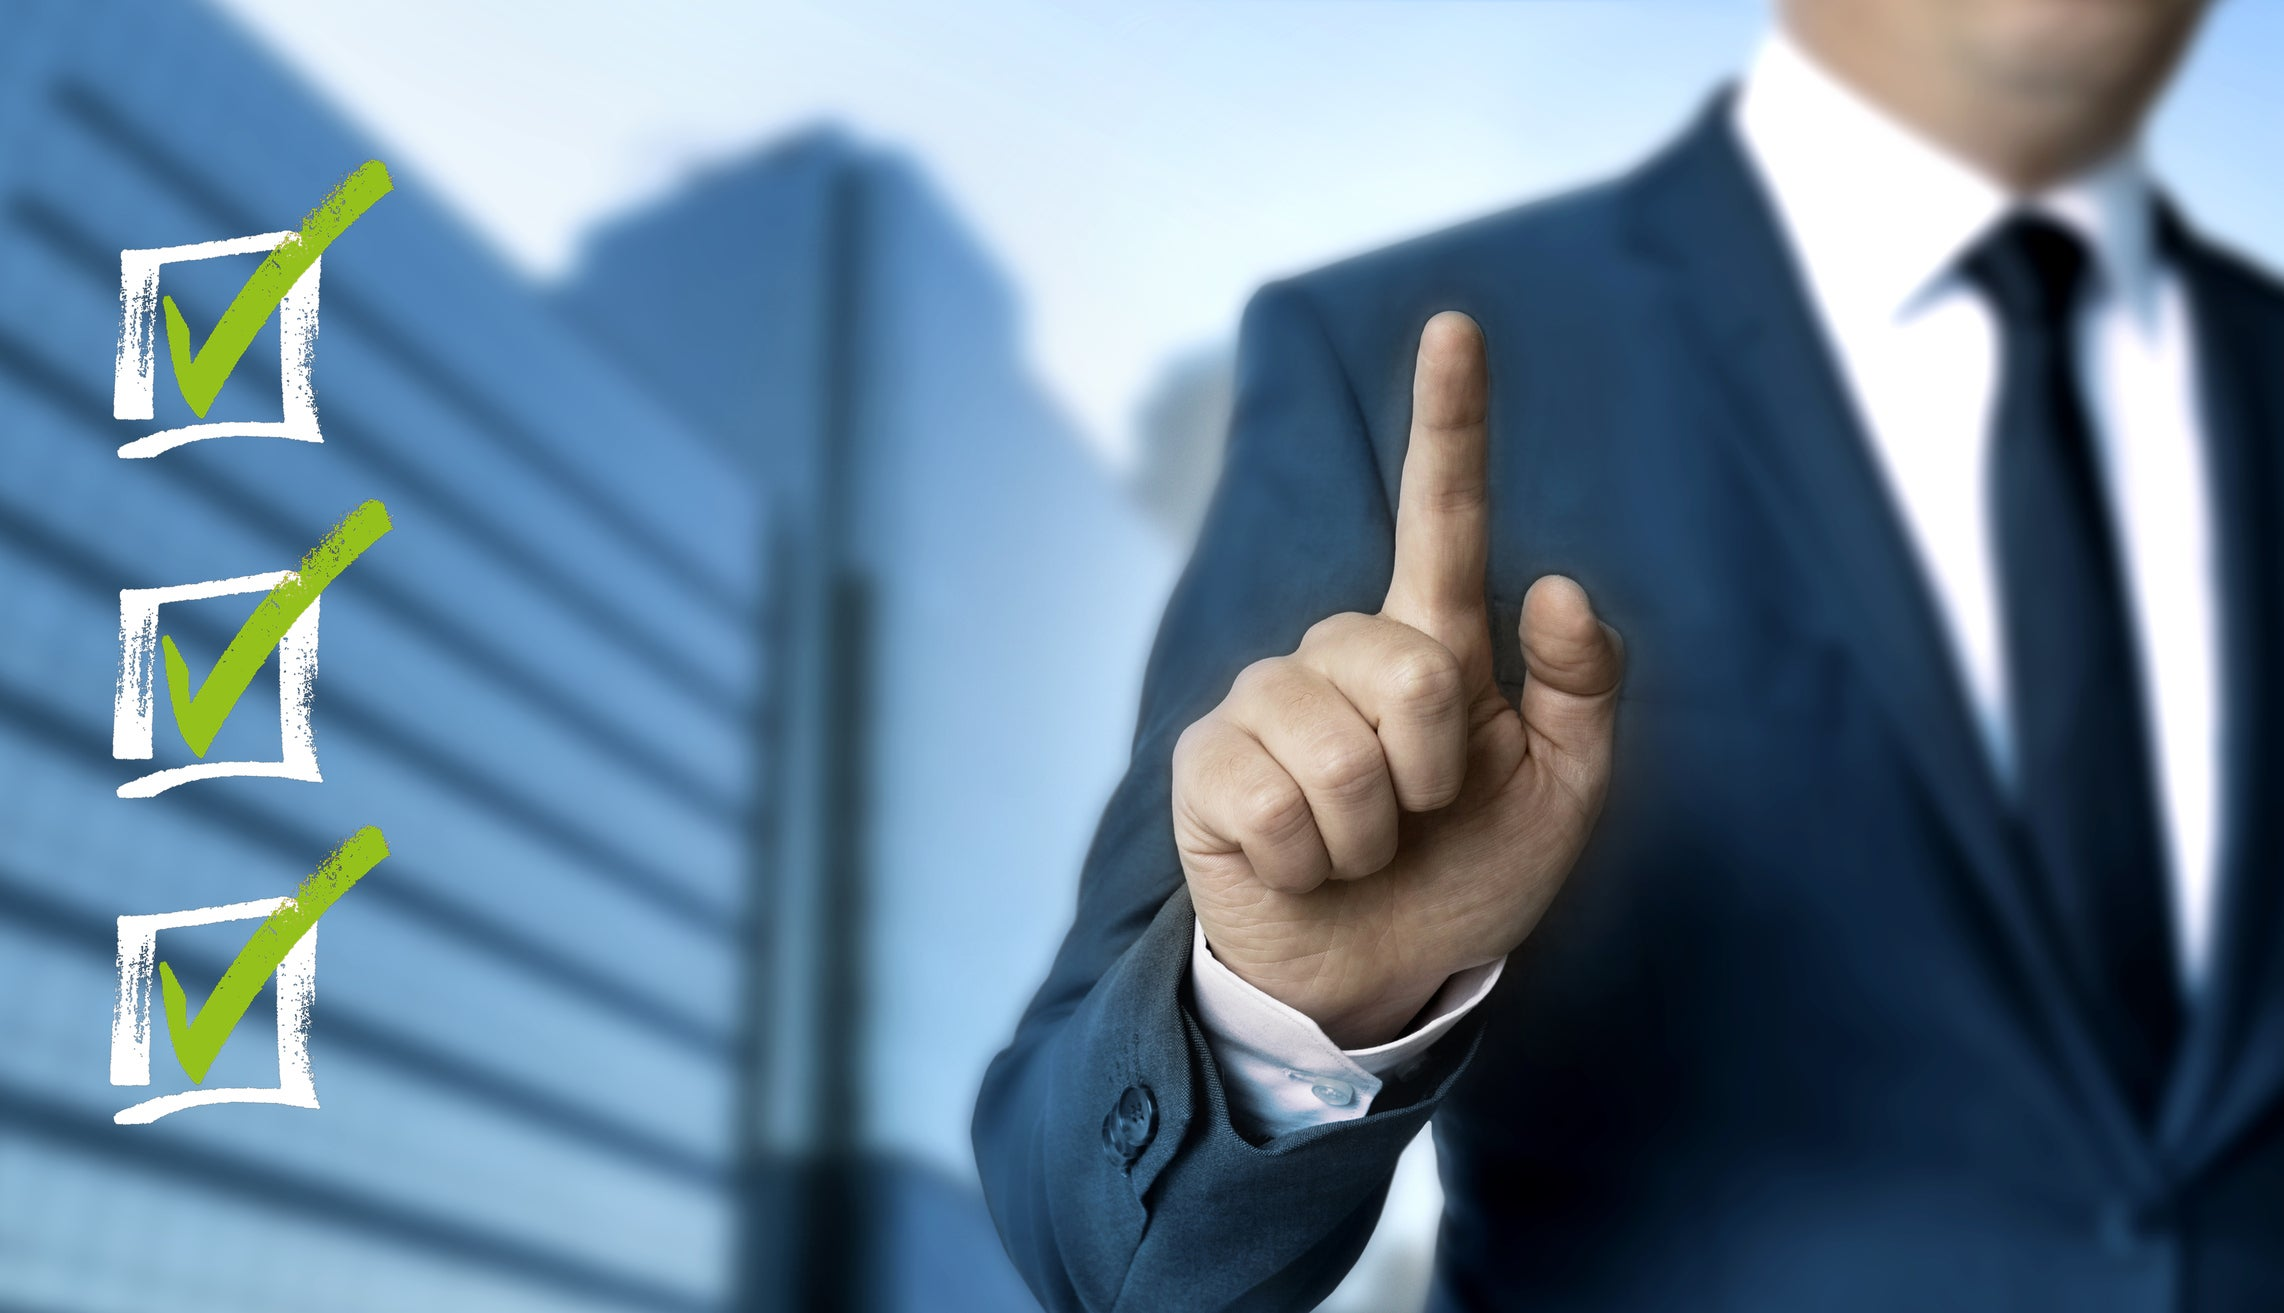 Businessman pointing finger upward next to three checked boxes